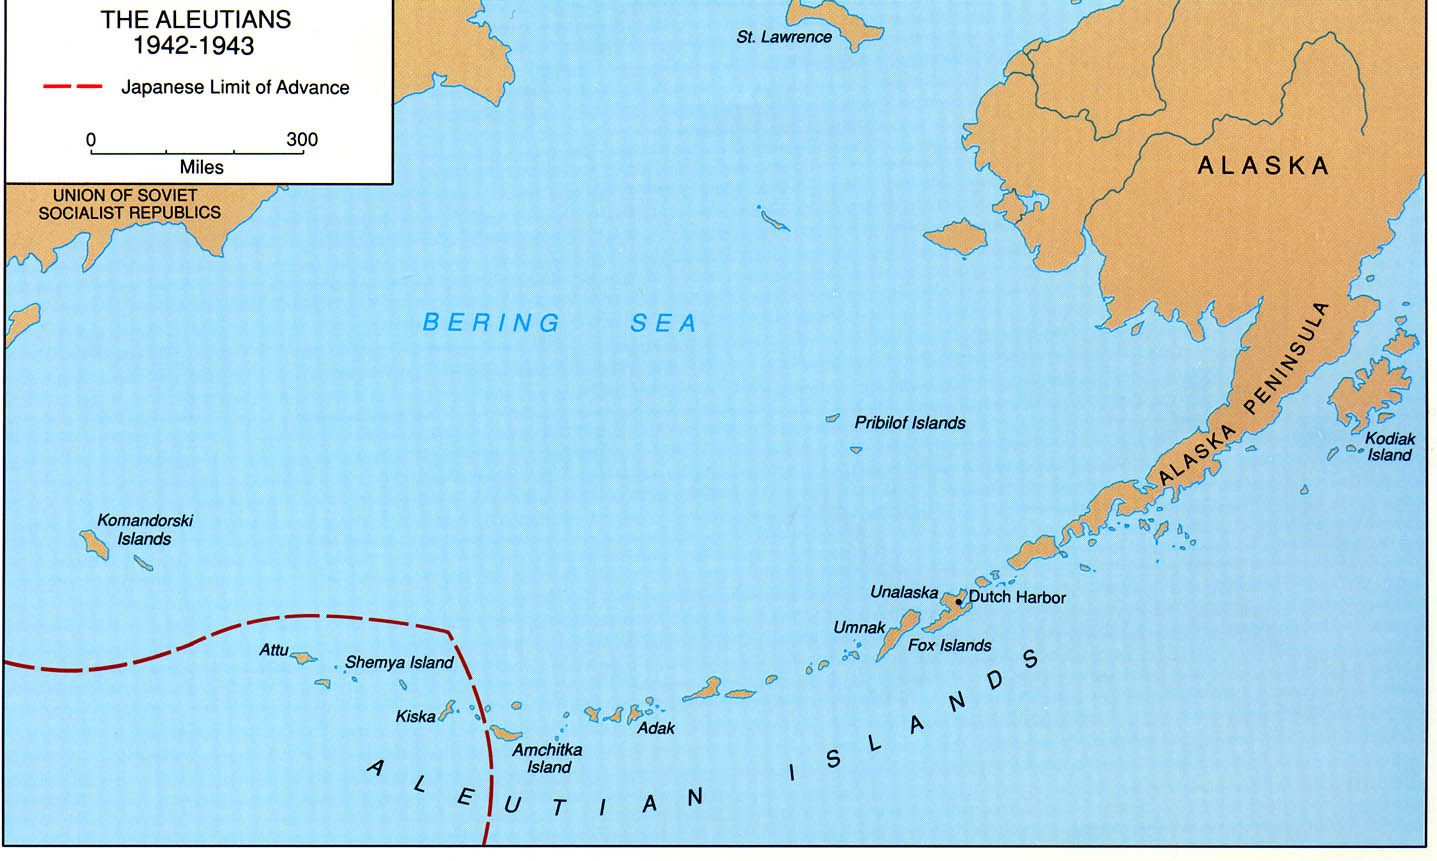 Aleutian island world war ii campaign june 31942 august 24 1945 the aleutians map grandpa william l black was stationed here while in the navy publicscrutiny Gallery